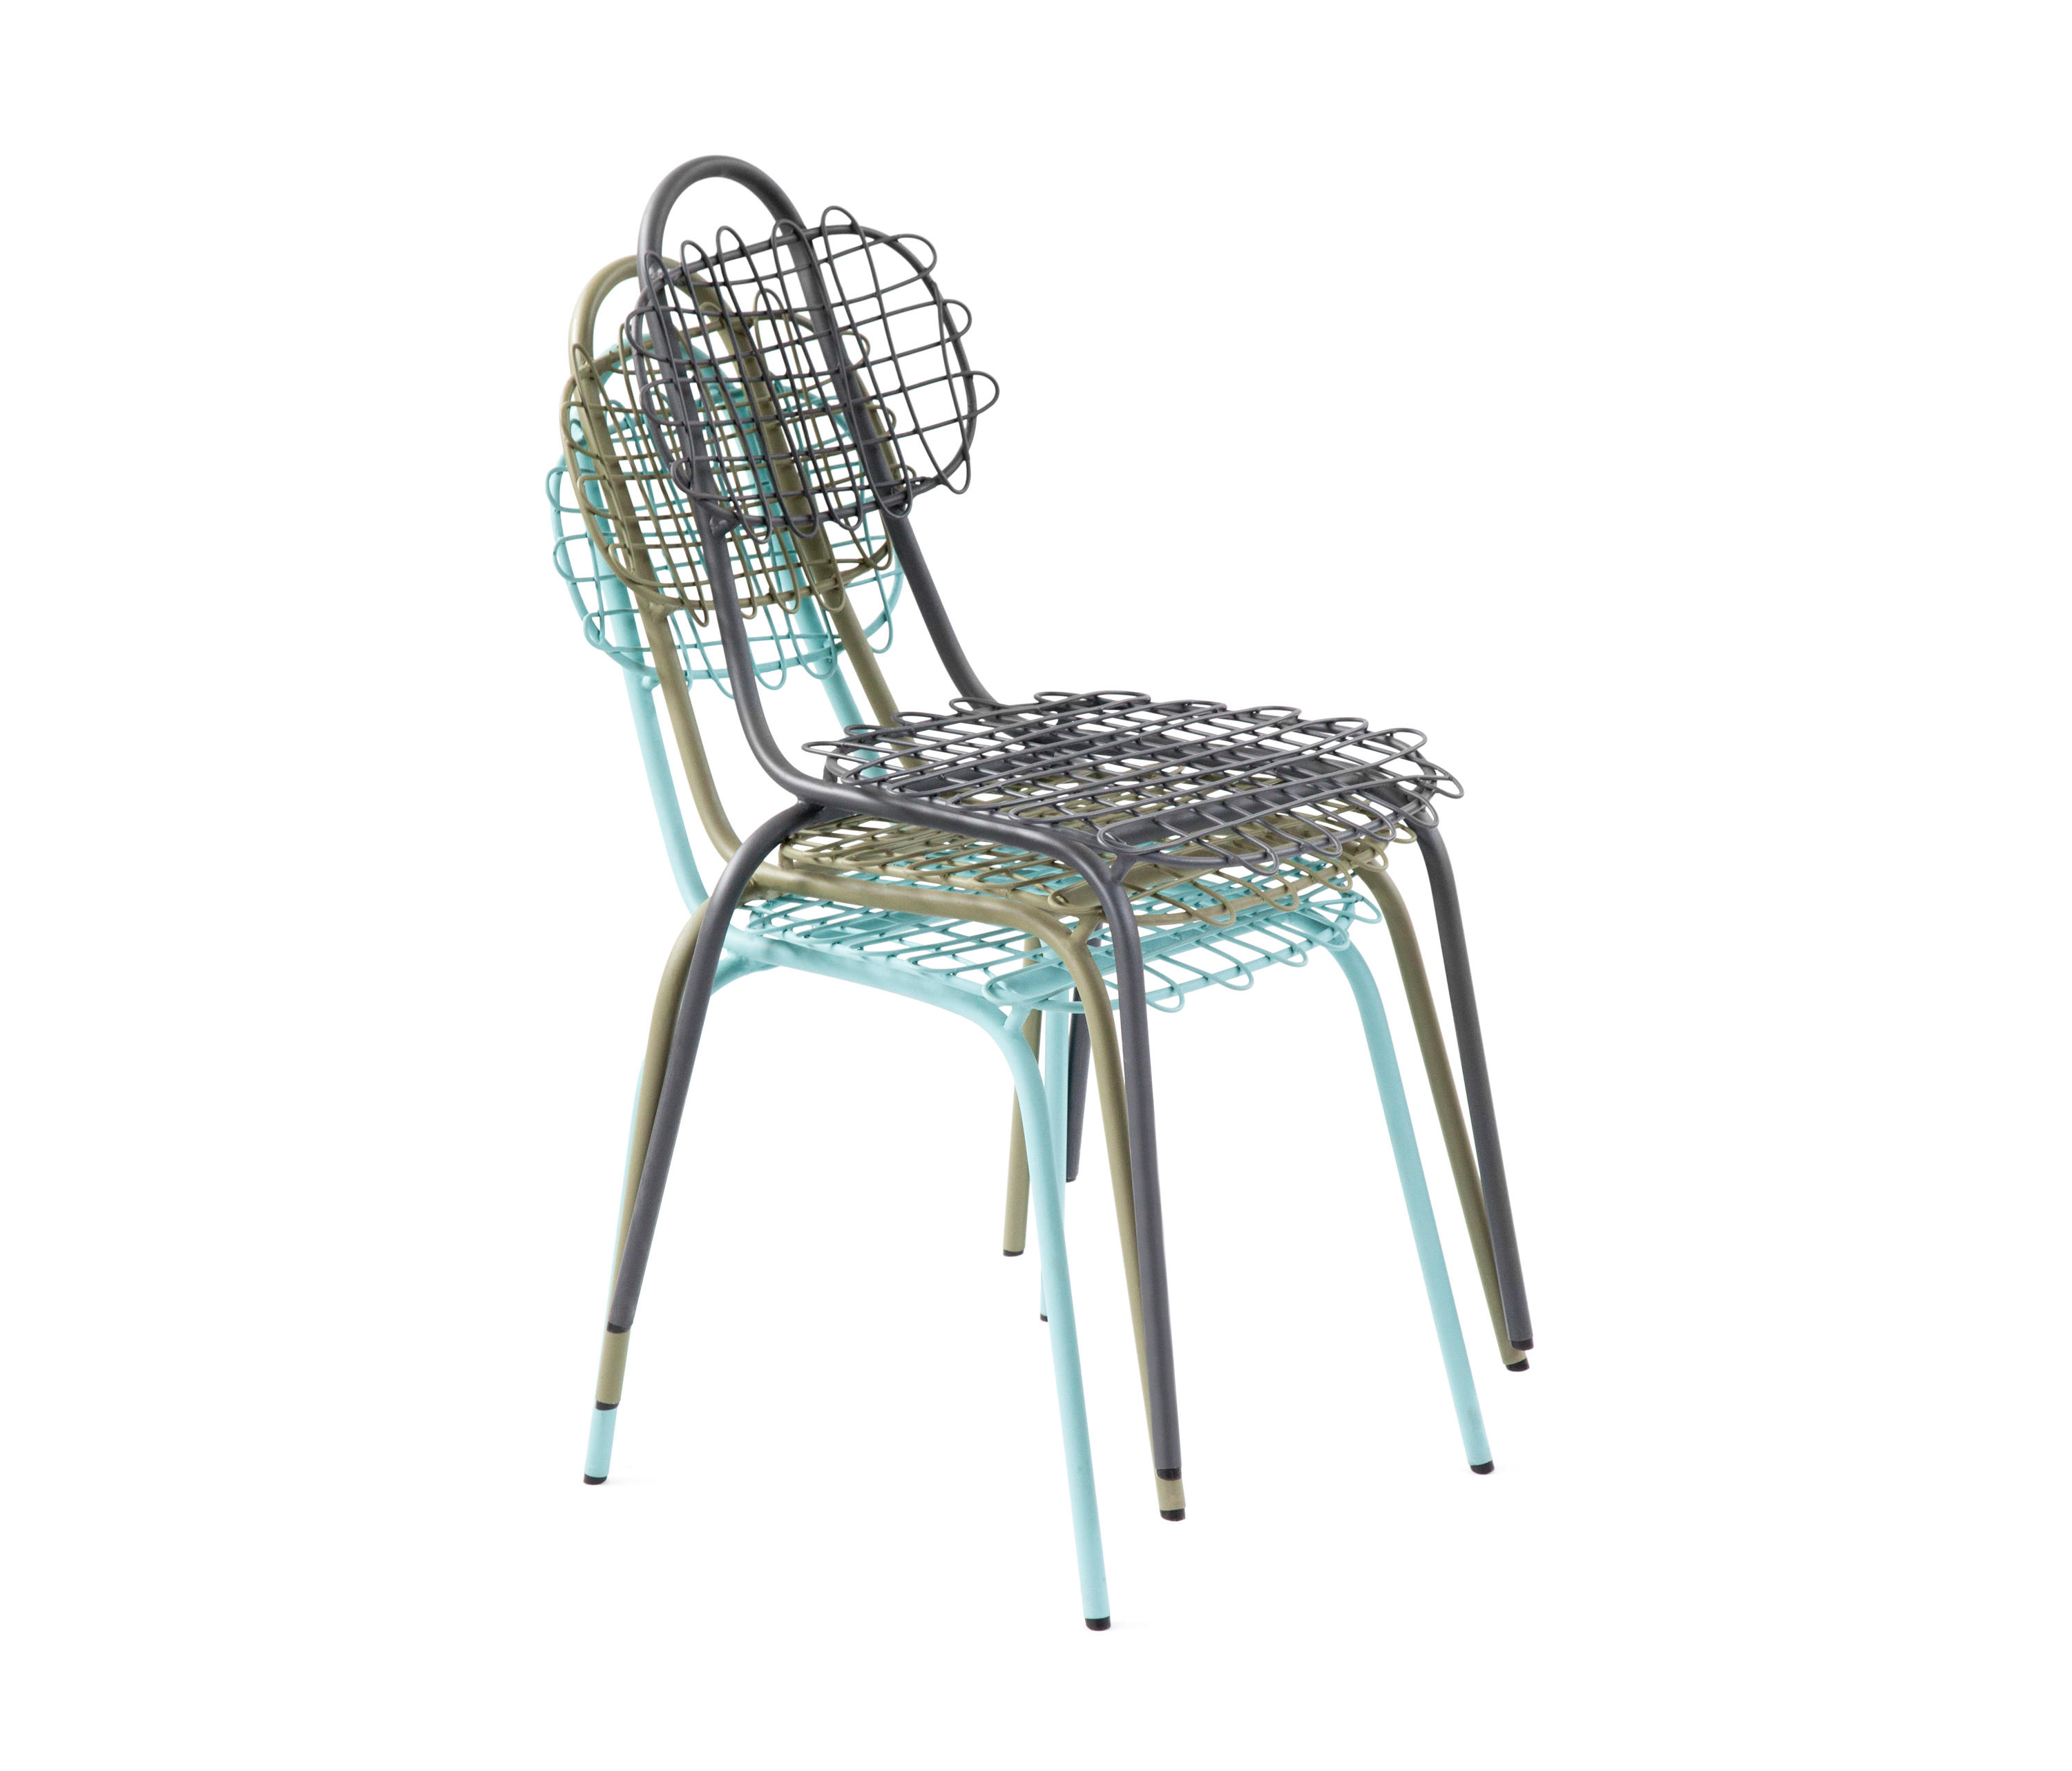 Chair Sketch sketch chair - garden chairs from jspr | architonic